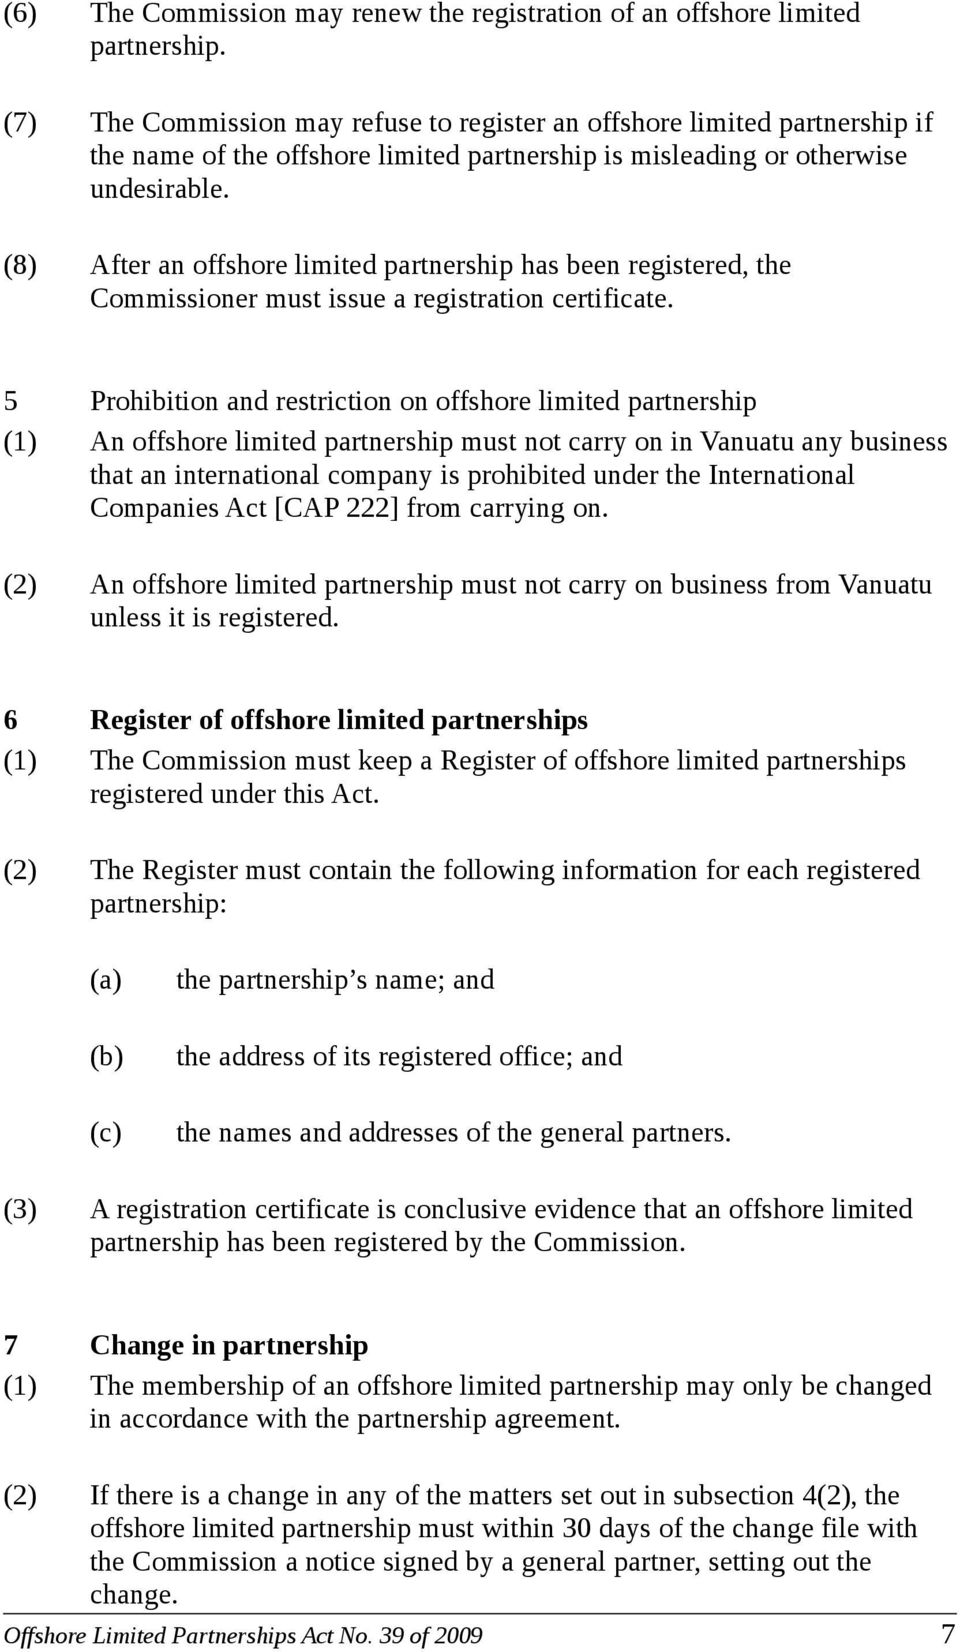 (8) After an offshore limited partnership has been registered, the Commissioner must issue a registration certificate.